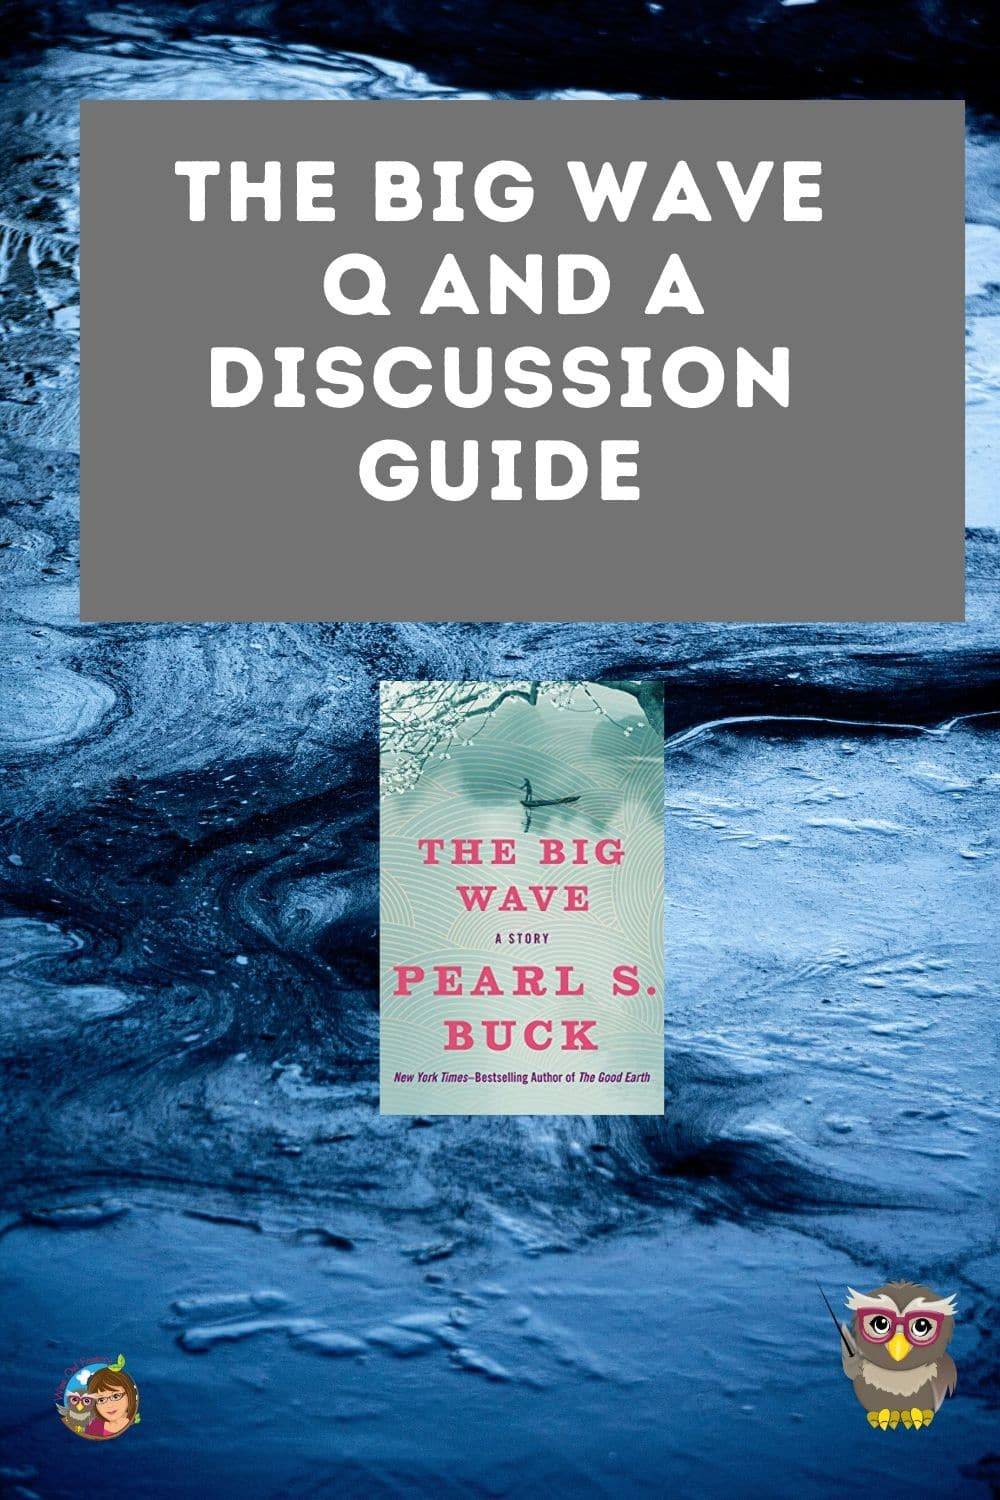 The Big Wave by Pearl S. Buck Free PowerPoint and PDF and free PDF discussion guide Q and A.